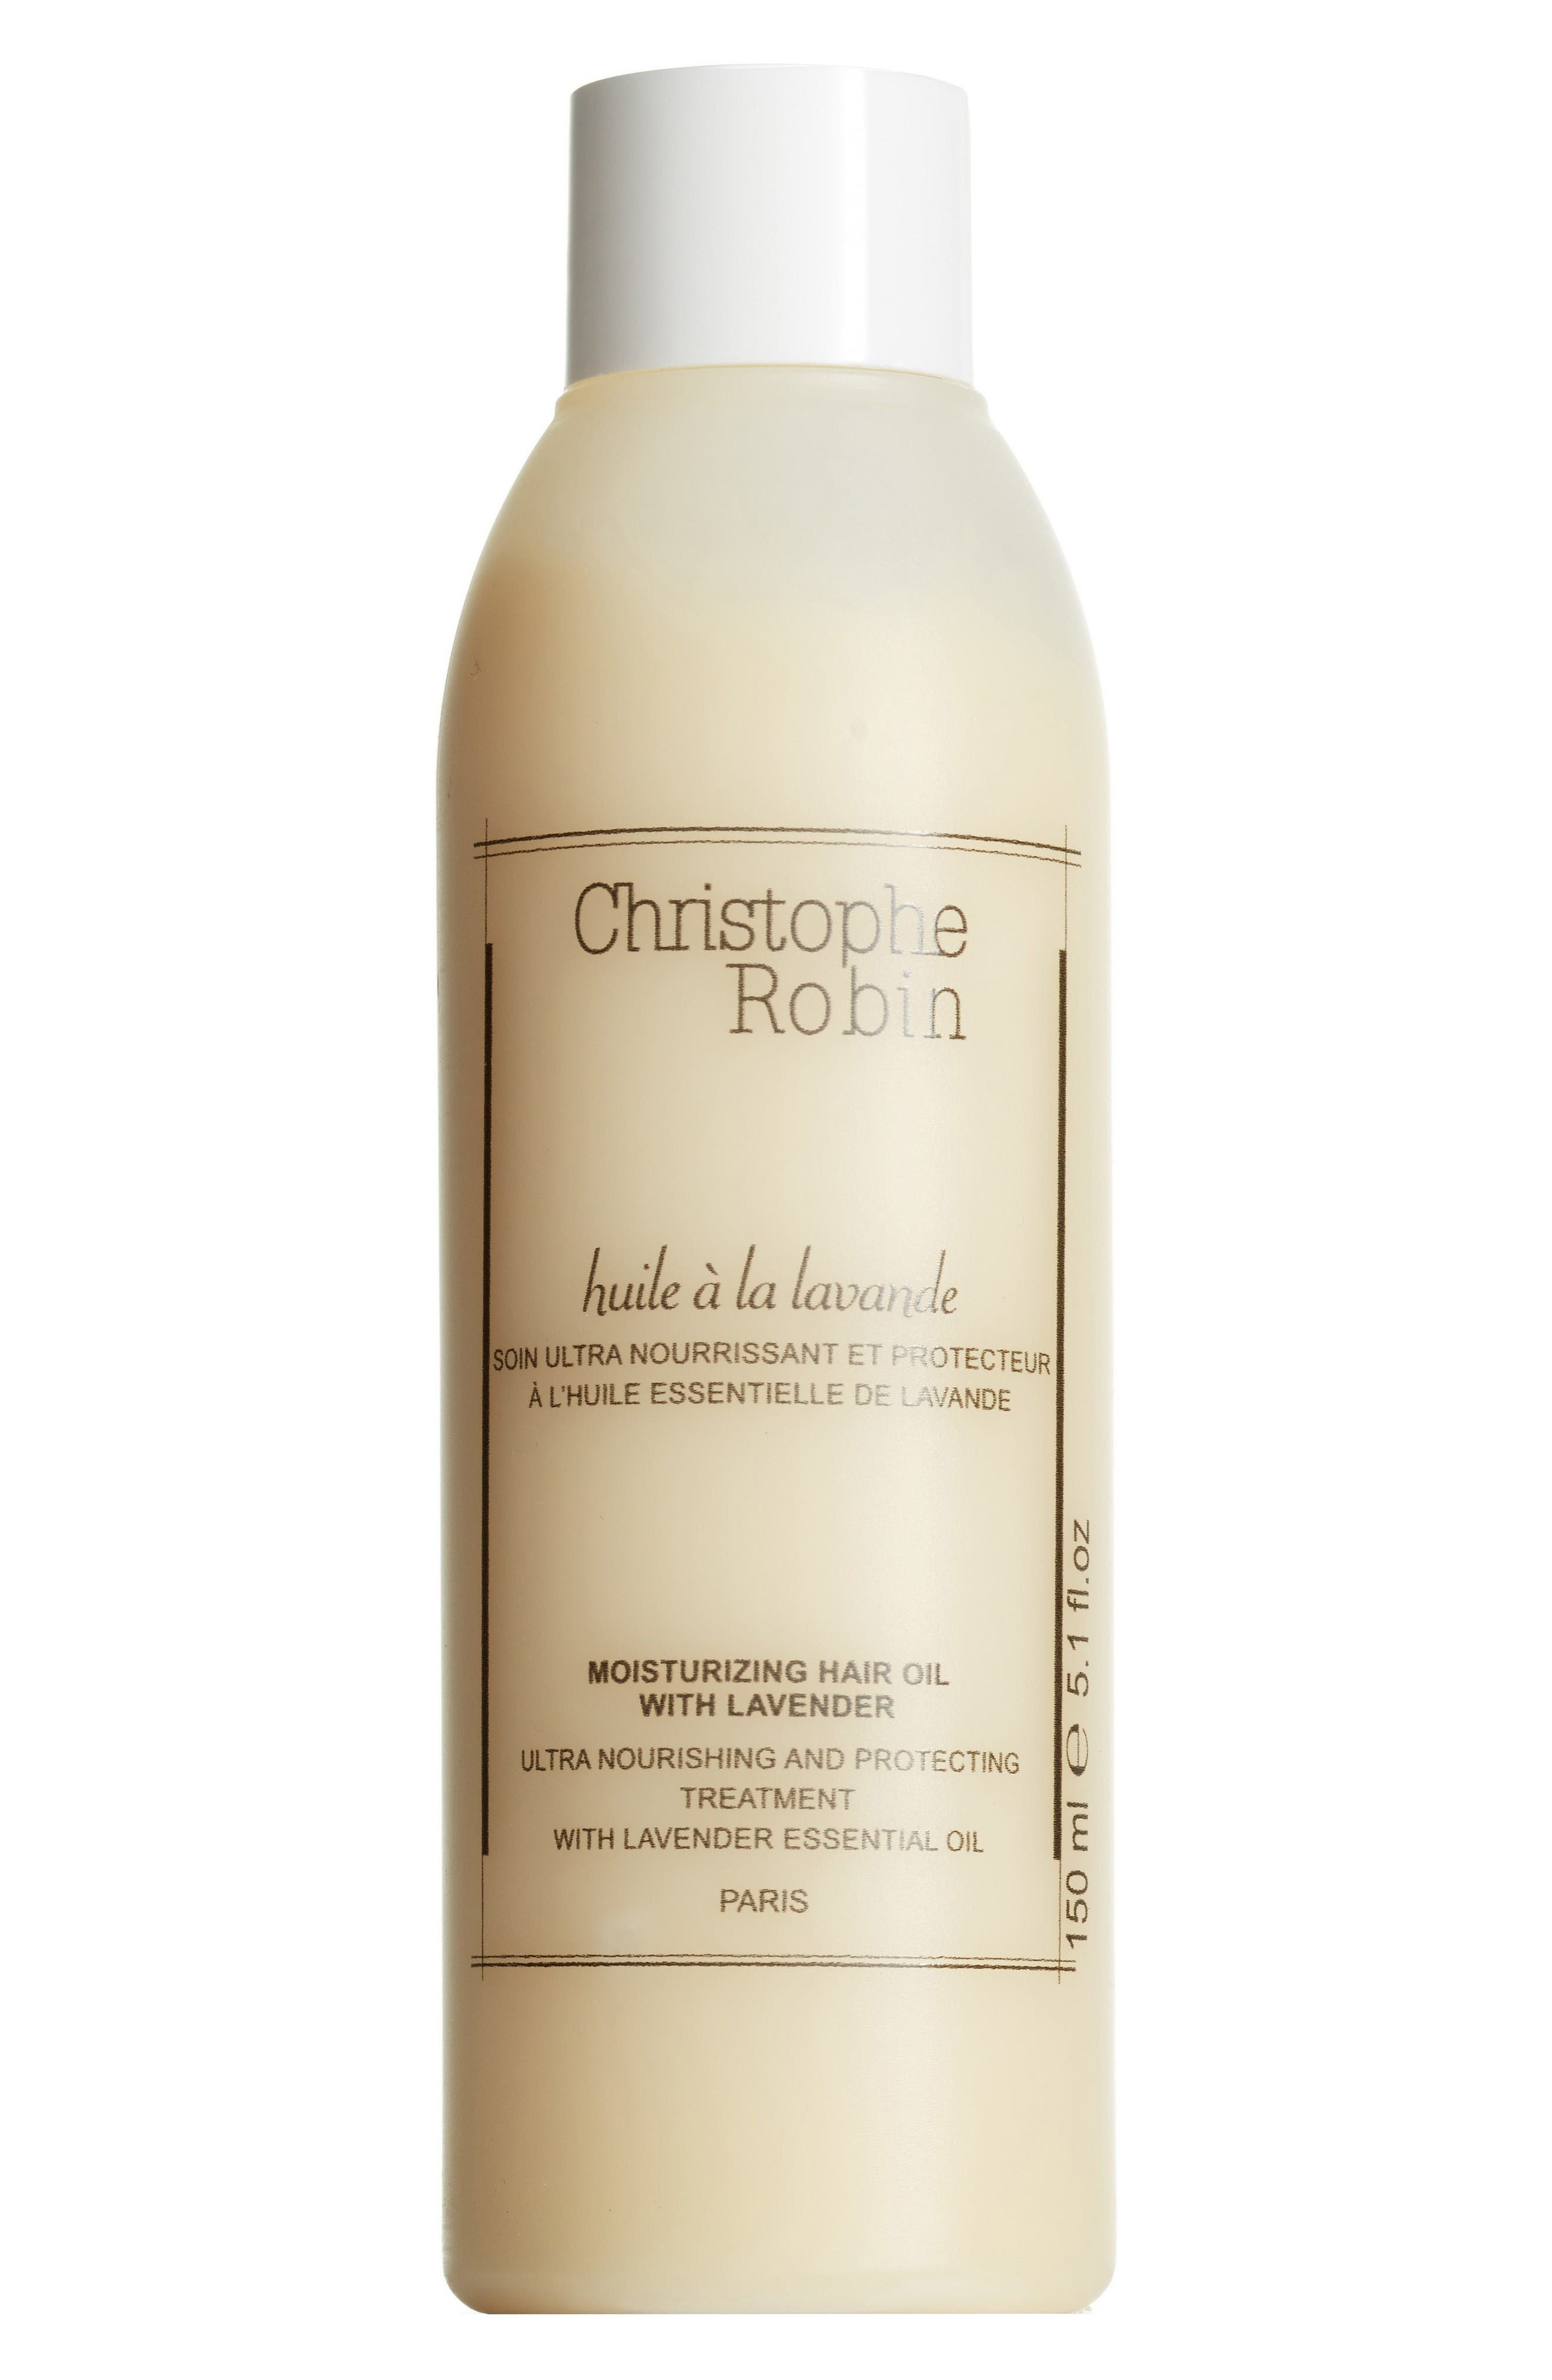 SPACE.NK.apothecary Christophe Robin Moisturizing Hair Oil with Lavender